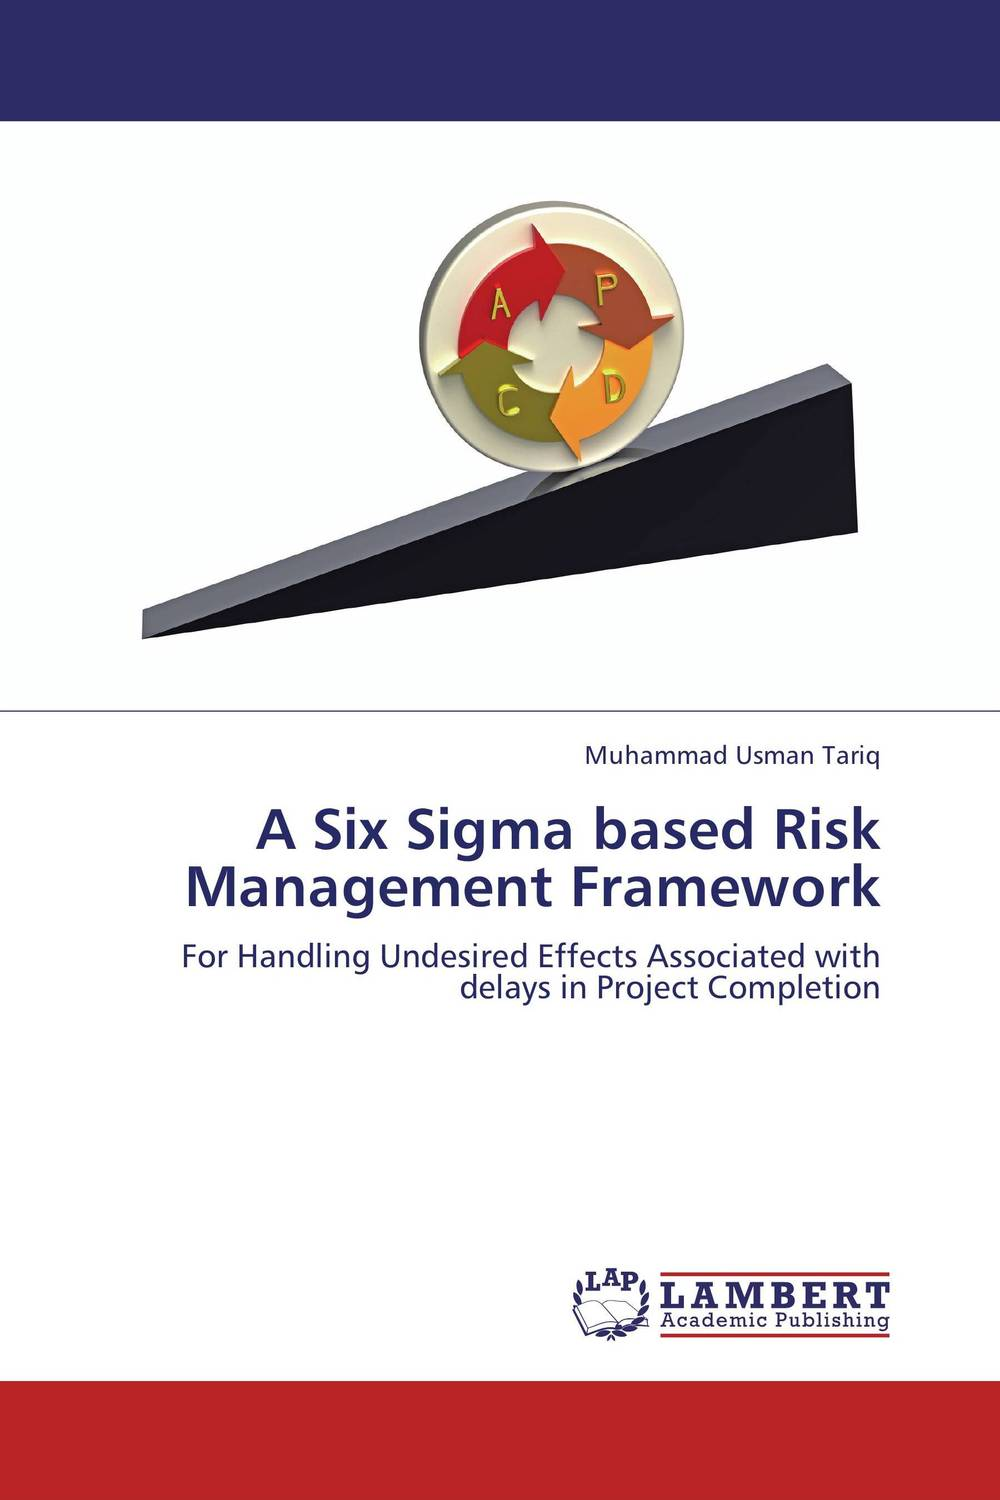 A Six Sigma based Risk Management Framework george eckes six sigma team dynamics the elusive key to project success